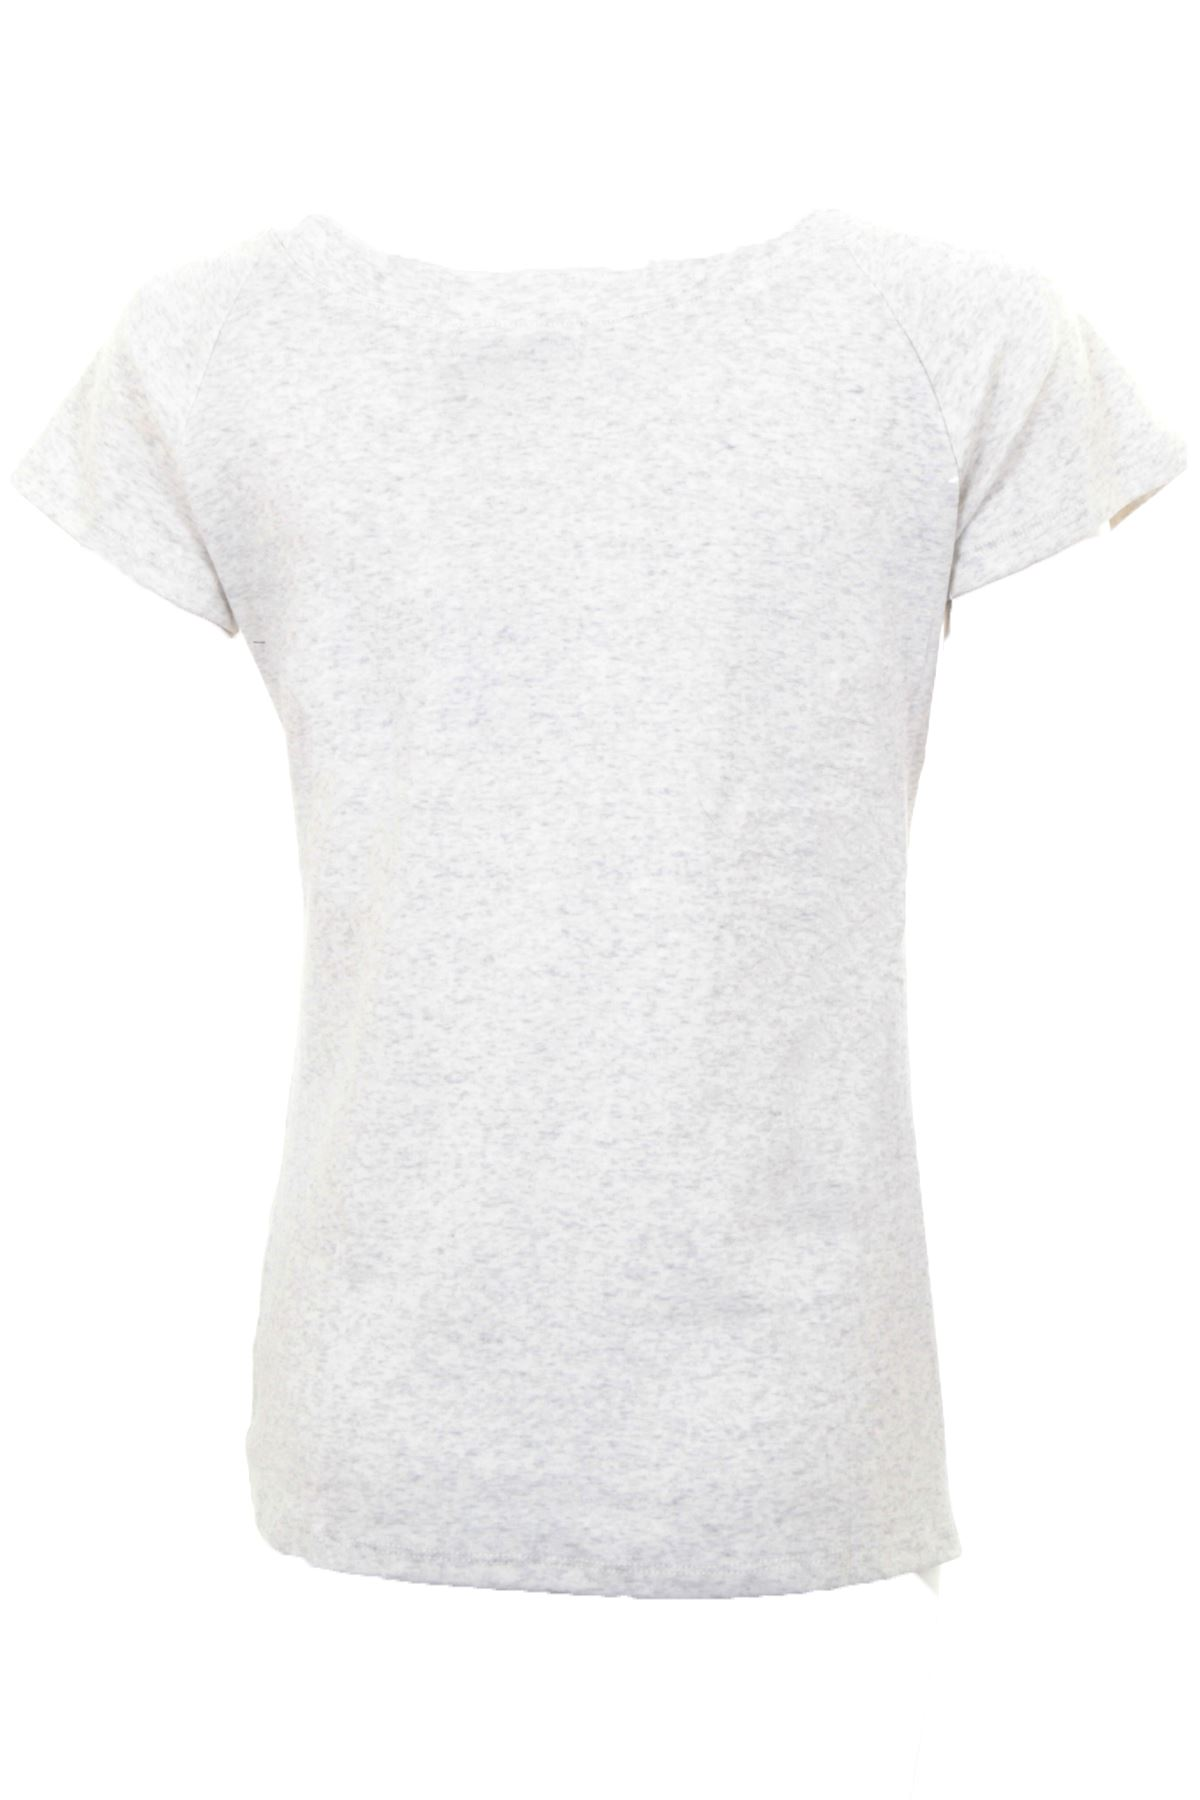 7105c704f Womens Plain Heather Short Sleeve Diamante Pearl Graphic Top T-Shirt ...